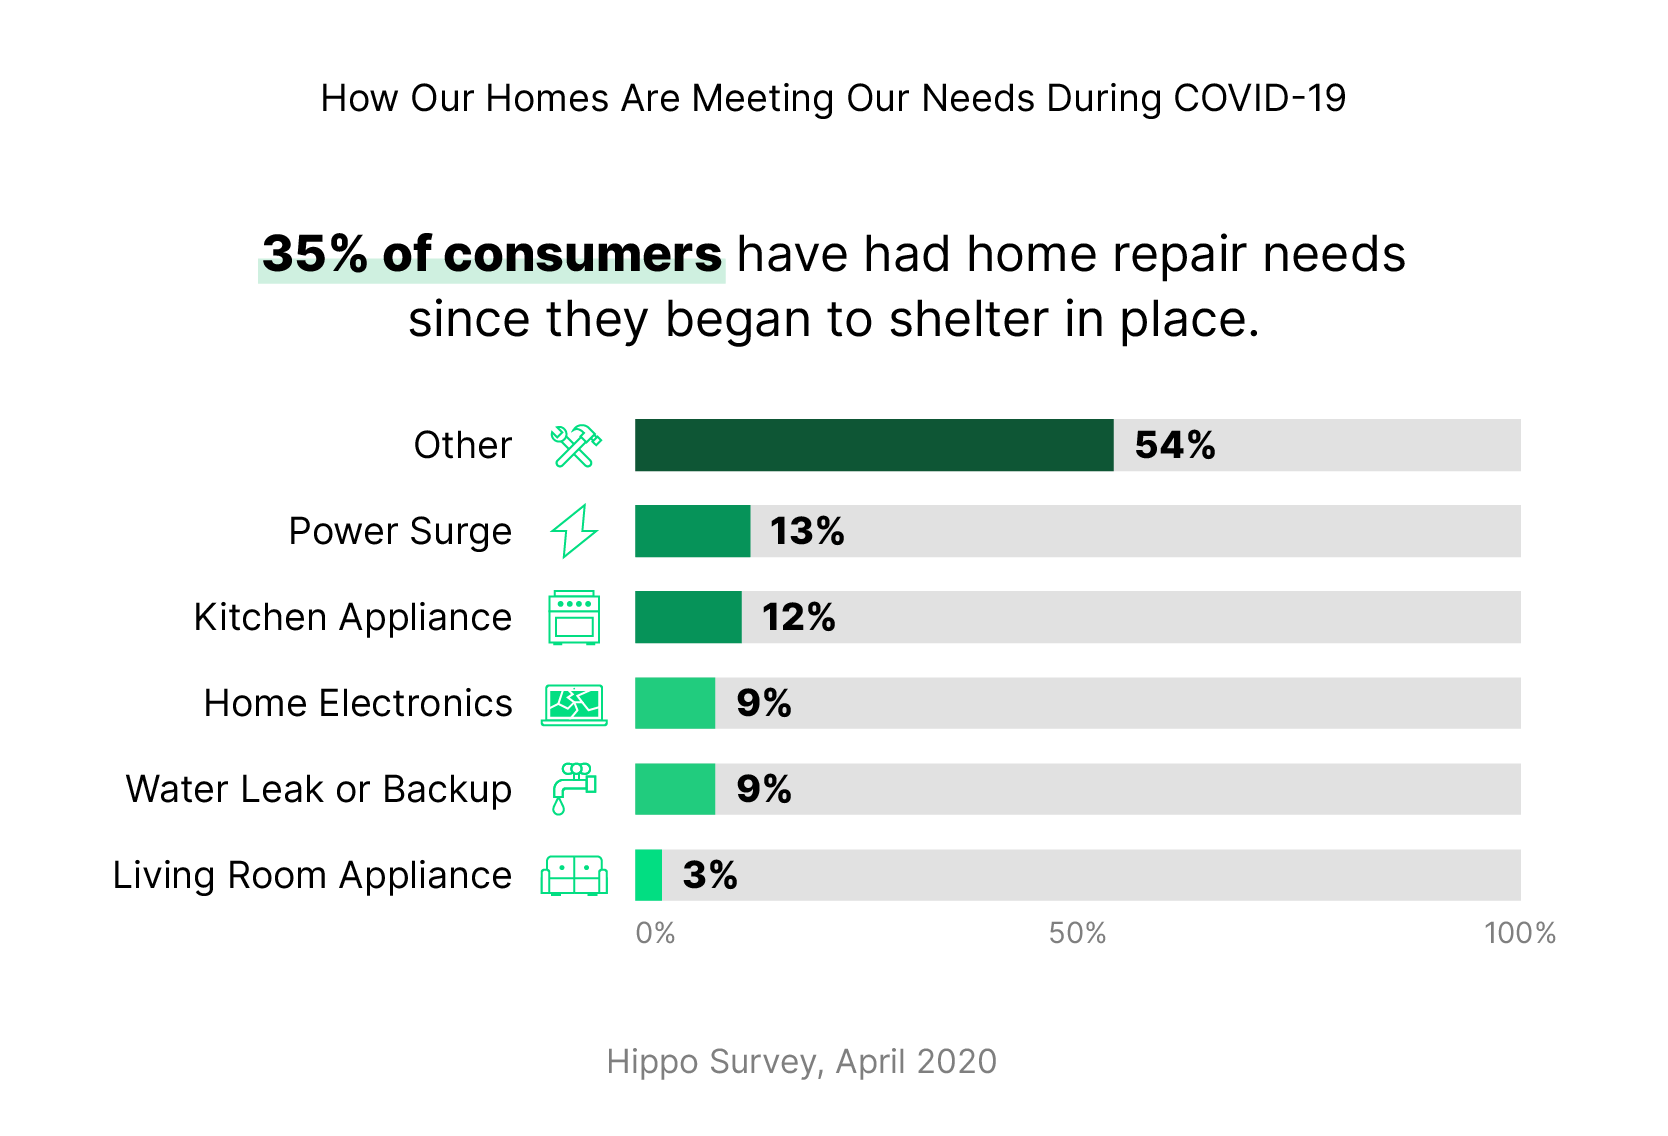 1 in 3 Americans have already needed home repairs while sheltering in place